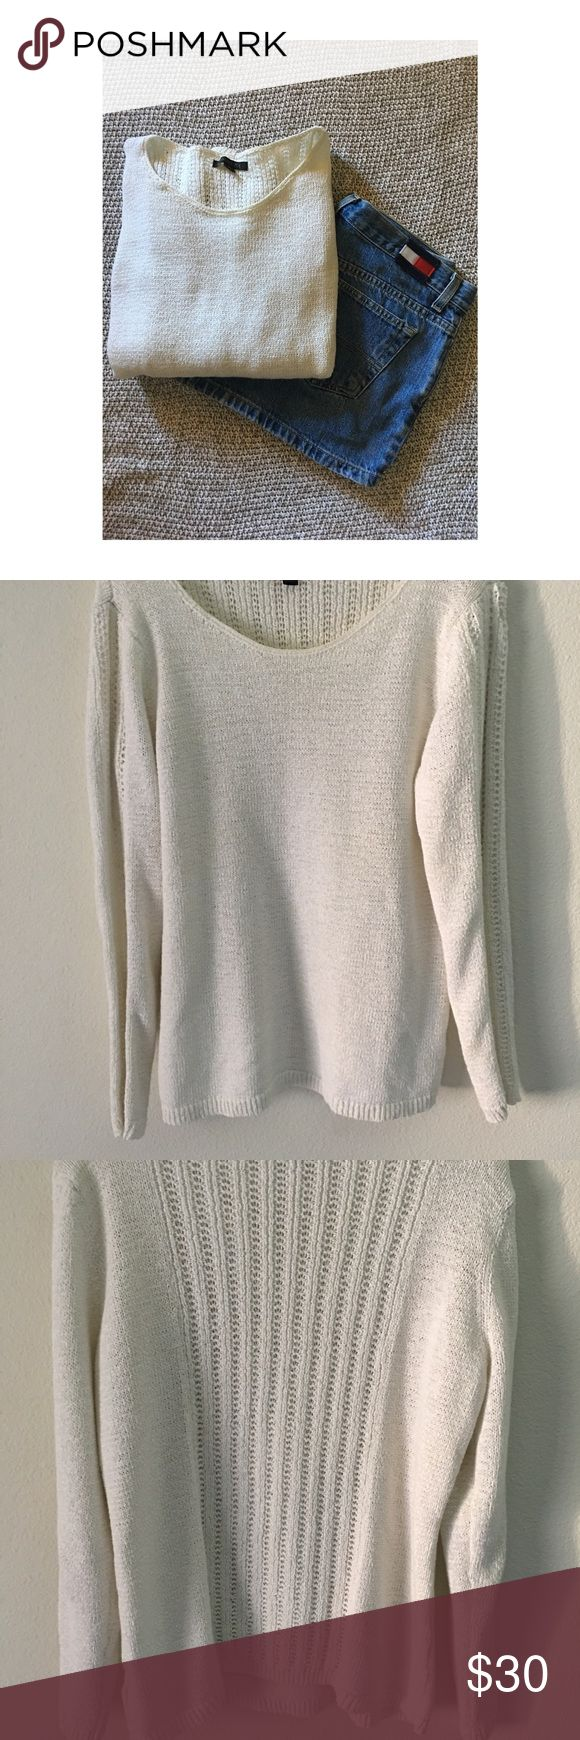 Rachel Zoe Sweater Rachel Zoe white sweater. Great condition except for one of the shoulder has some pulling on the fabric, nothing that can't be fixed. (Very minor as pictured) I would say this is a petite size XL sweater I am a medium and loved wearing this as it fit me well. Rachel Zoe Sweaters Crew & Scoop Necks